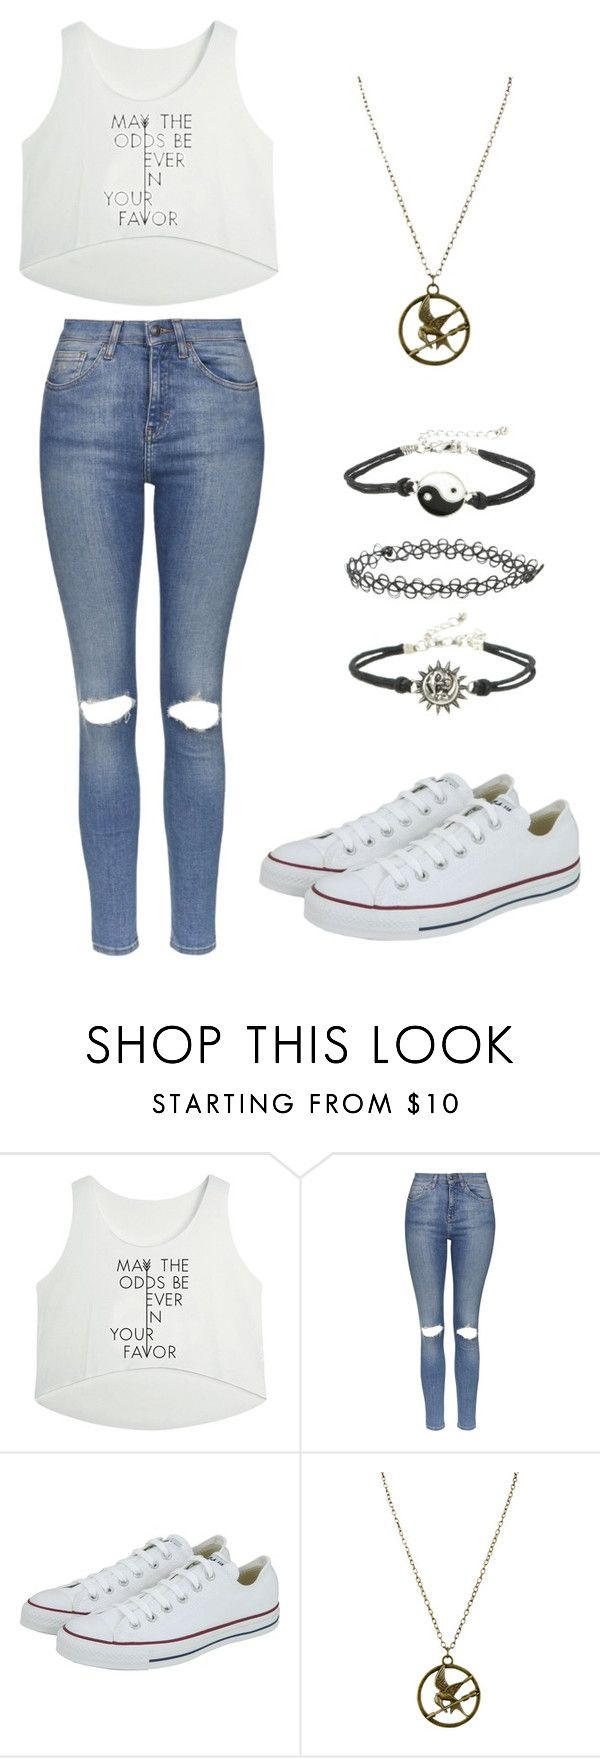 """Sunday"" by just-zoe-here ❤ liked on Polyvore featuring Topshop and Converse"